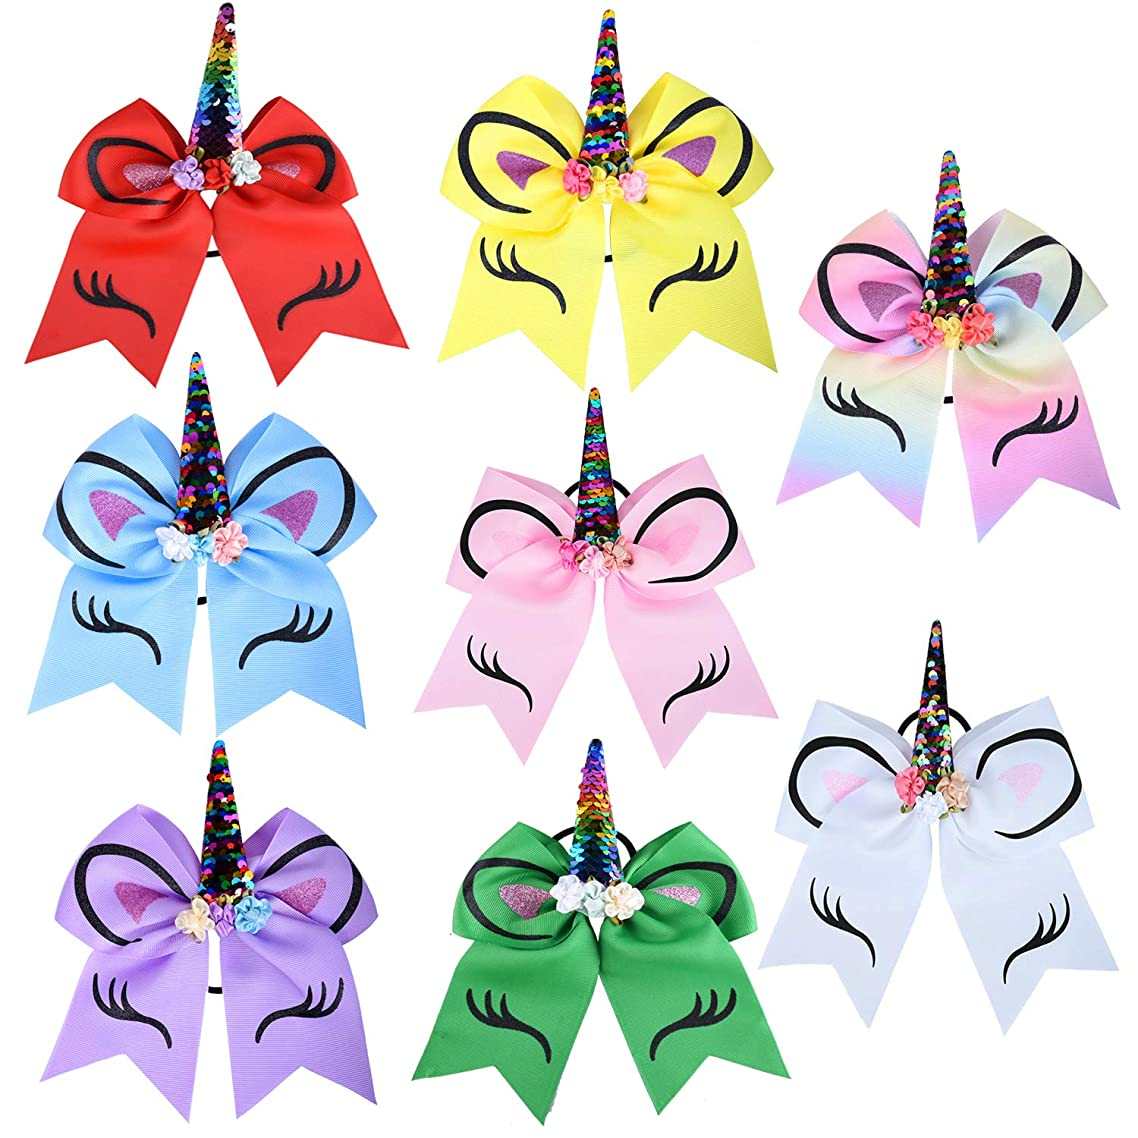 SIQUK 8 Pieces Unicorn Cheer Hair Bow Hair Elastic